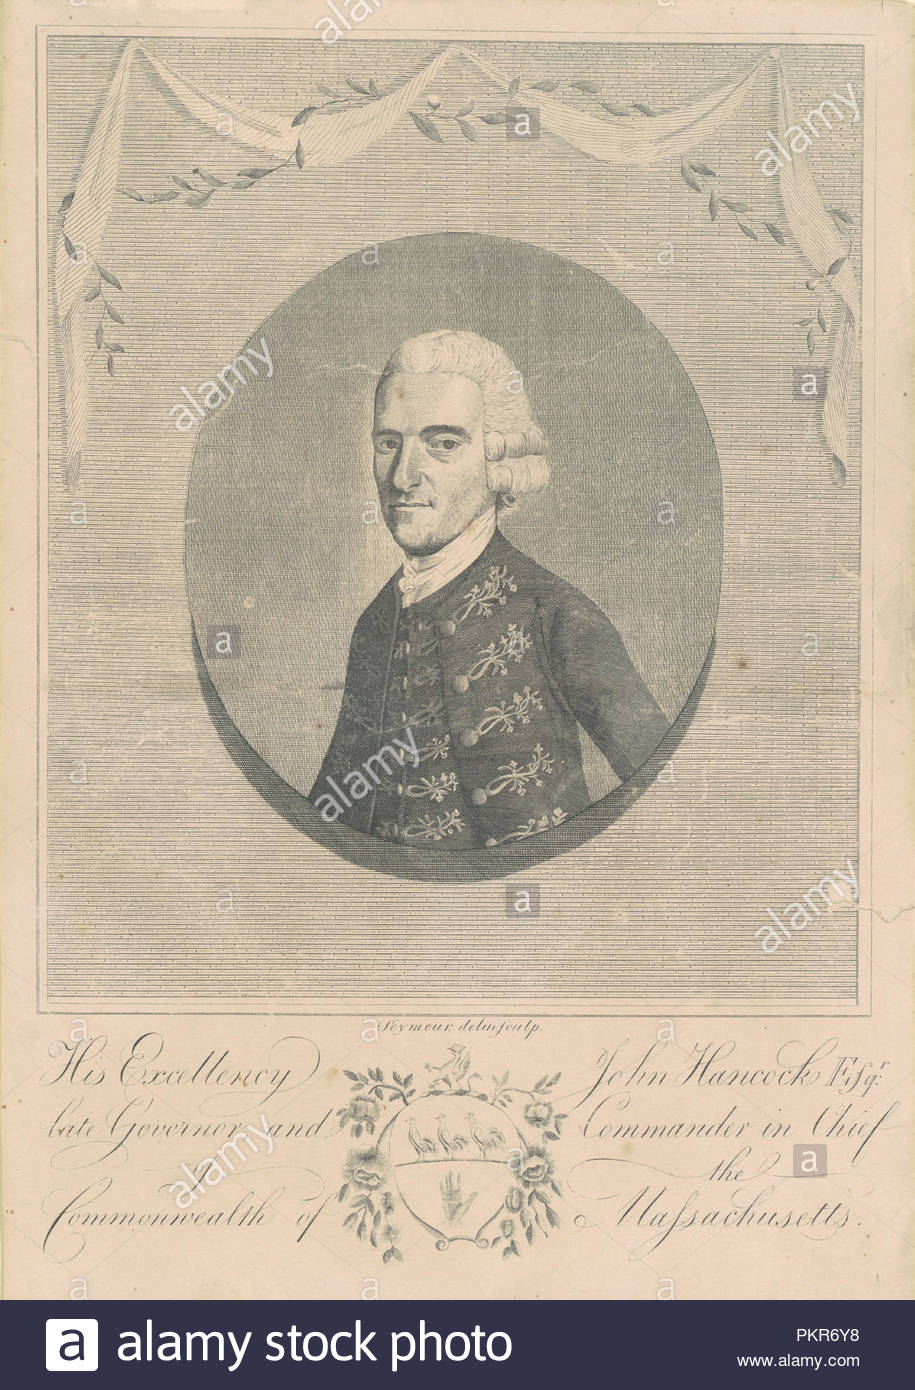 His Excellency John Hancock, Esquire. Dated: c. 1794. Dimensions: sheet: 33.34 × 23.5 cm (13 1/8 × 9 1/4 in.). Medium: engraving in black on wove paper. Museum: National Gallery of Art, Washington DC. Author: Joseph H. Seymour. - Stock Image